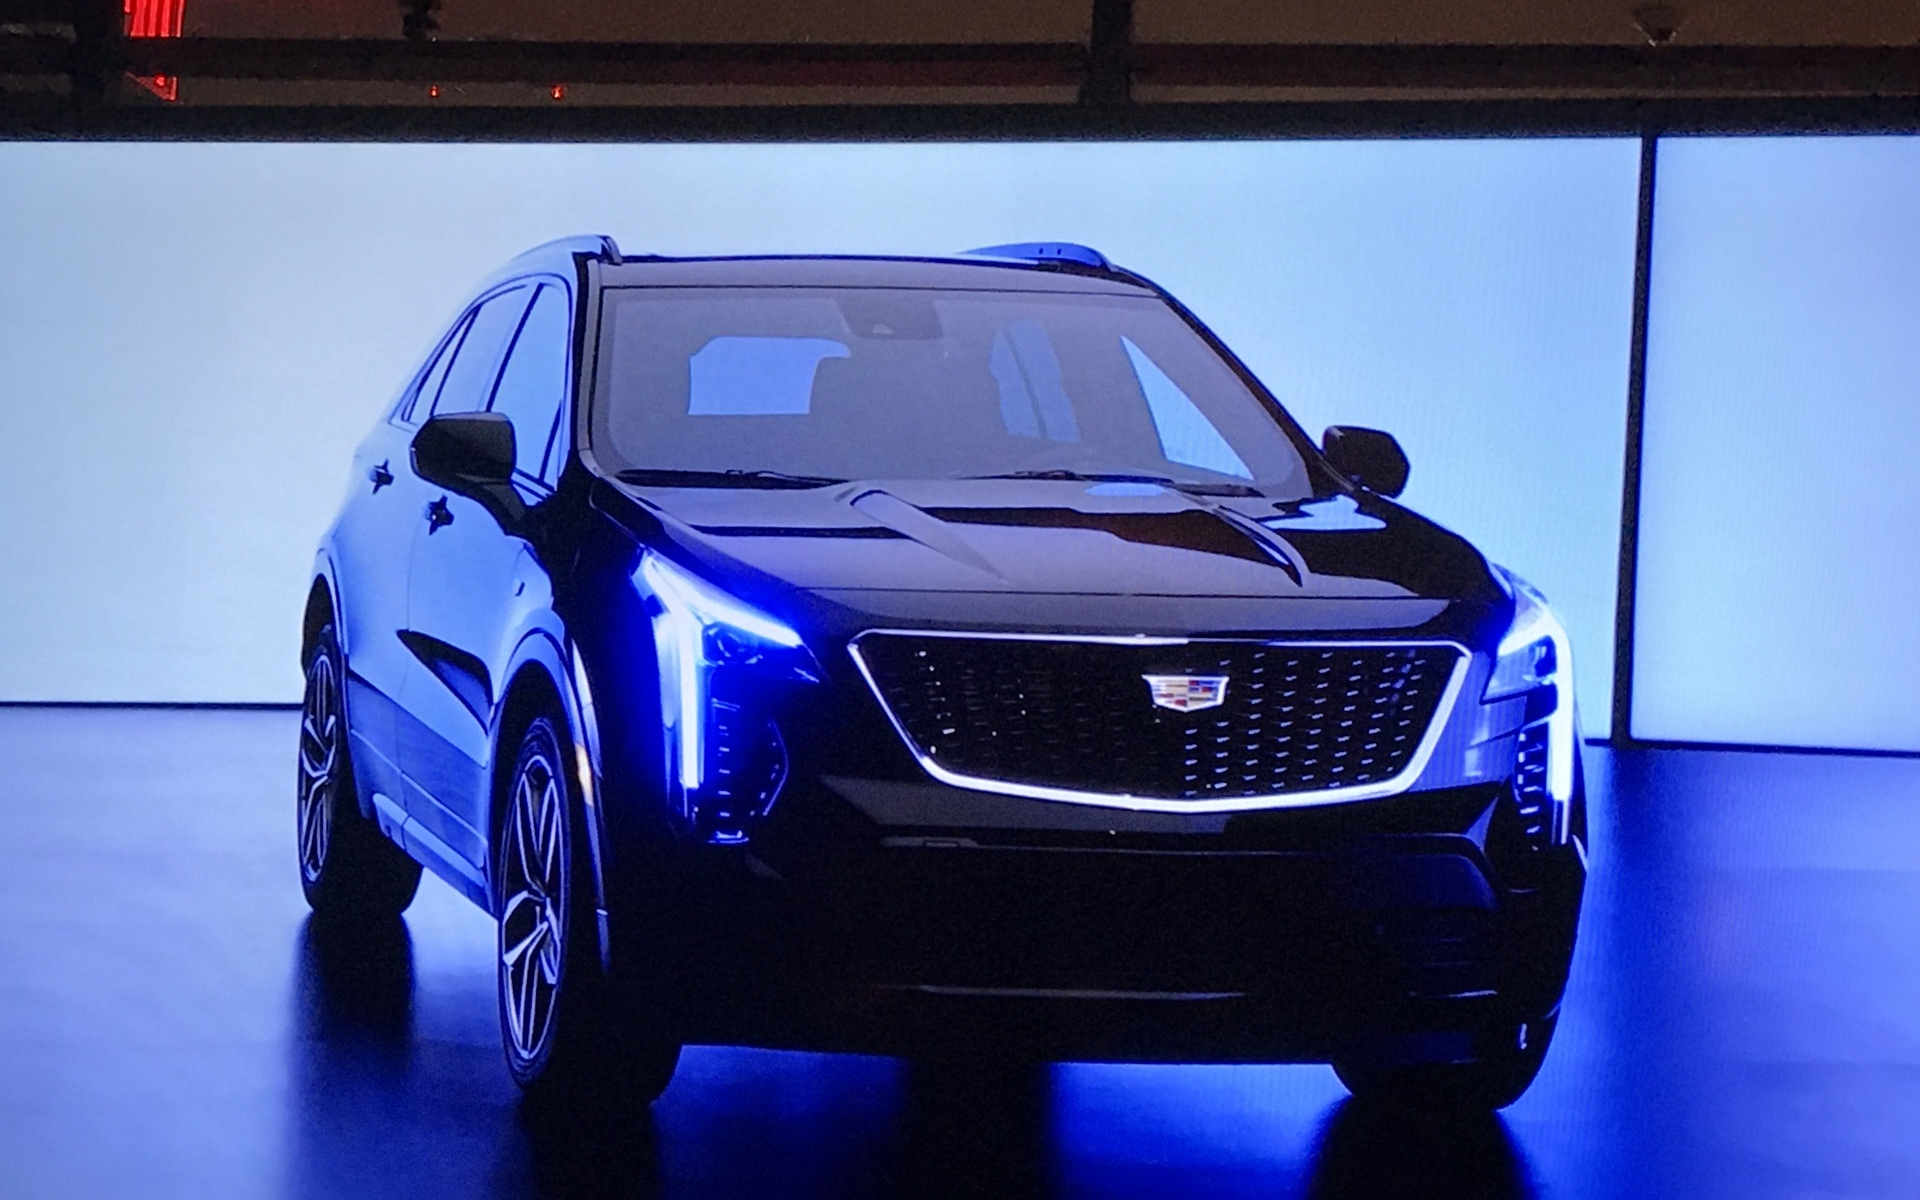 2019 Cadillac Xt4 A New Luxury Subcompact Suv The Car Guide